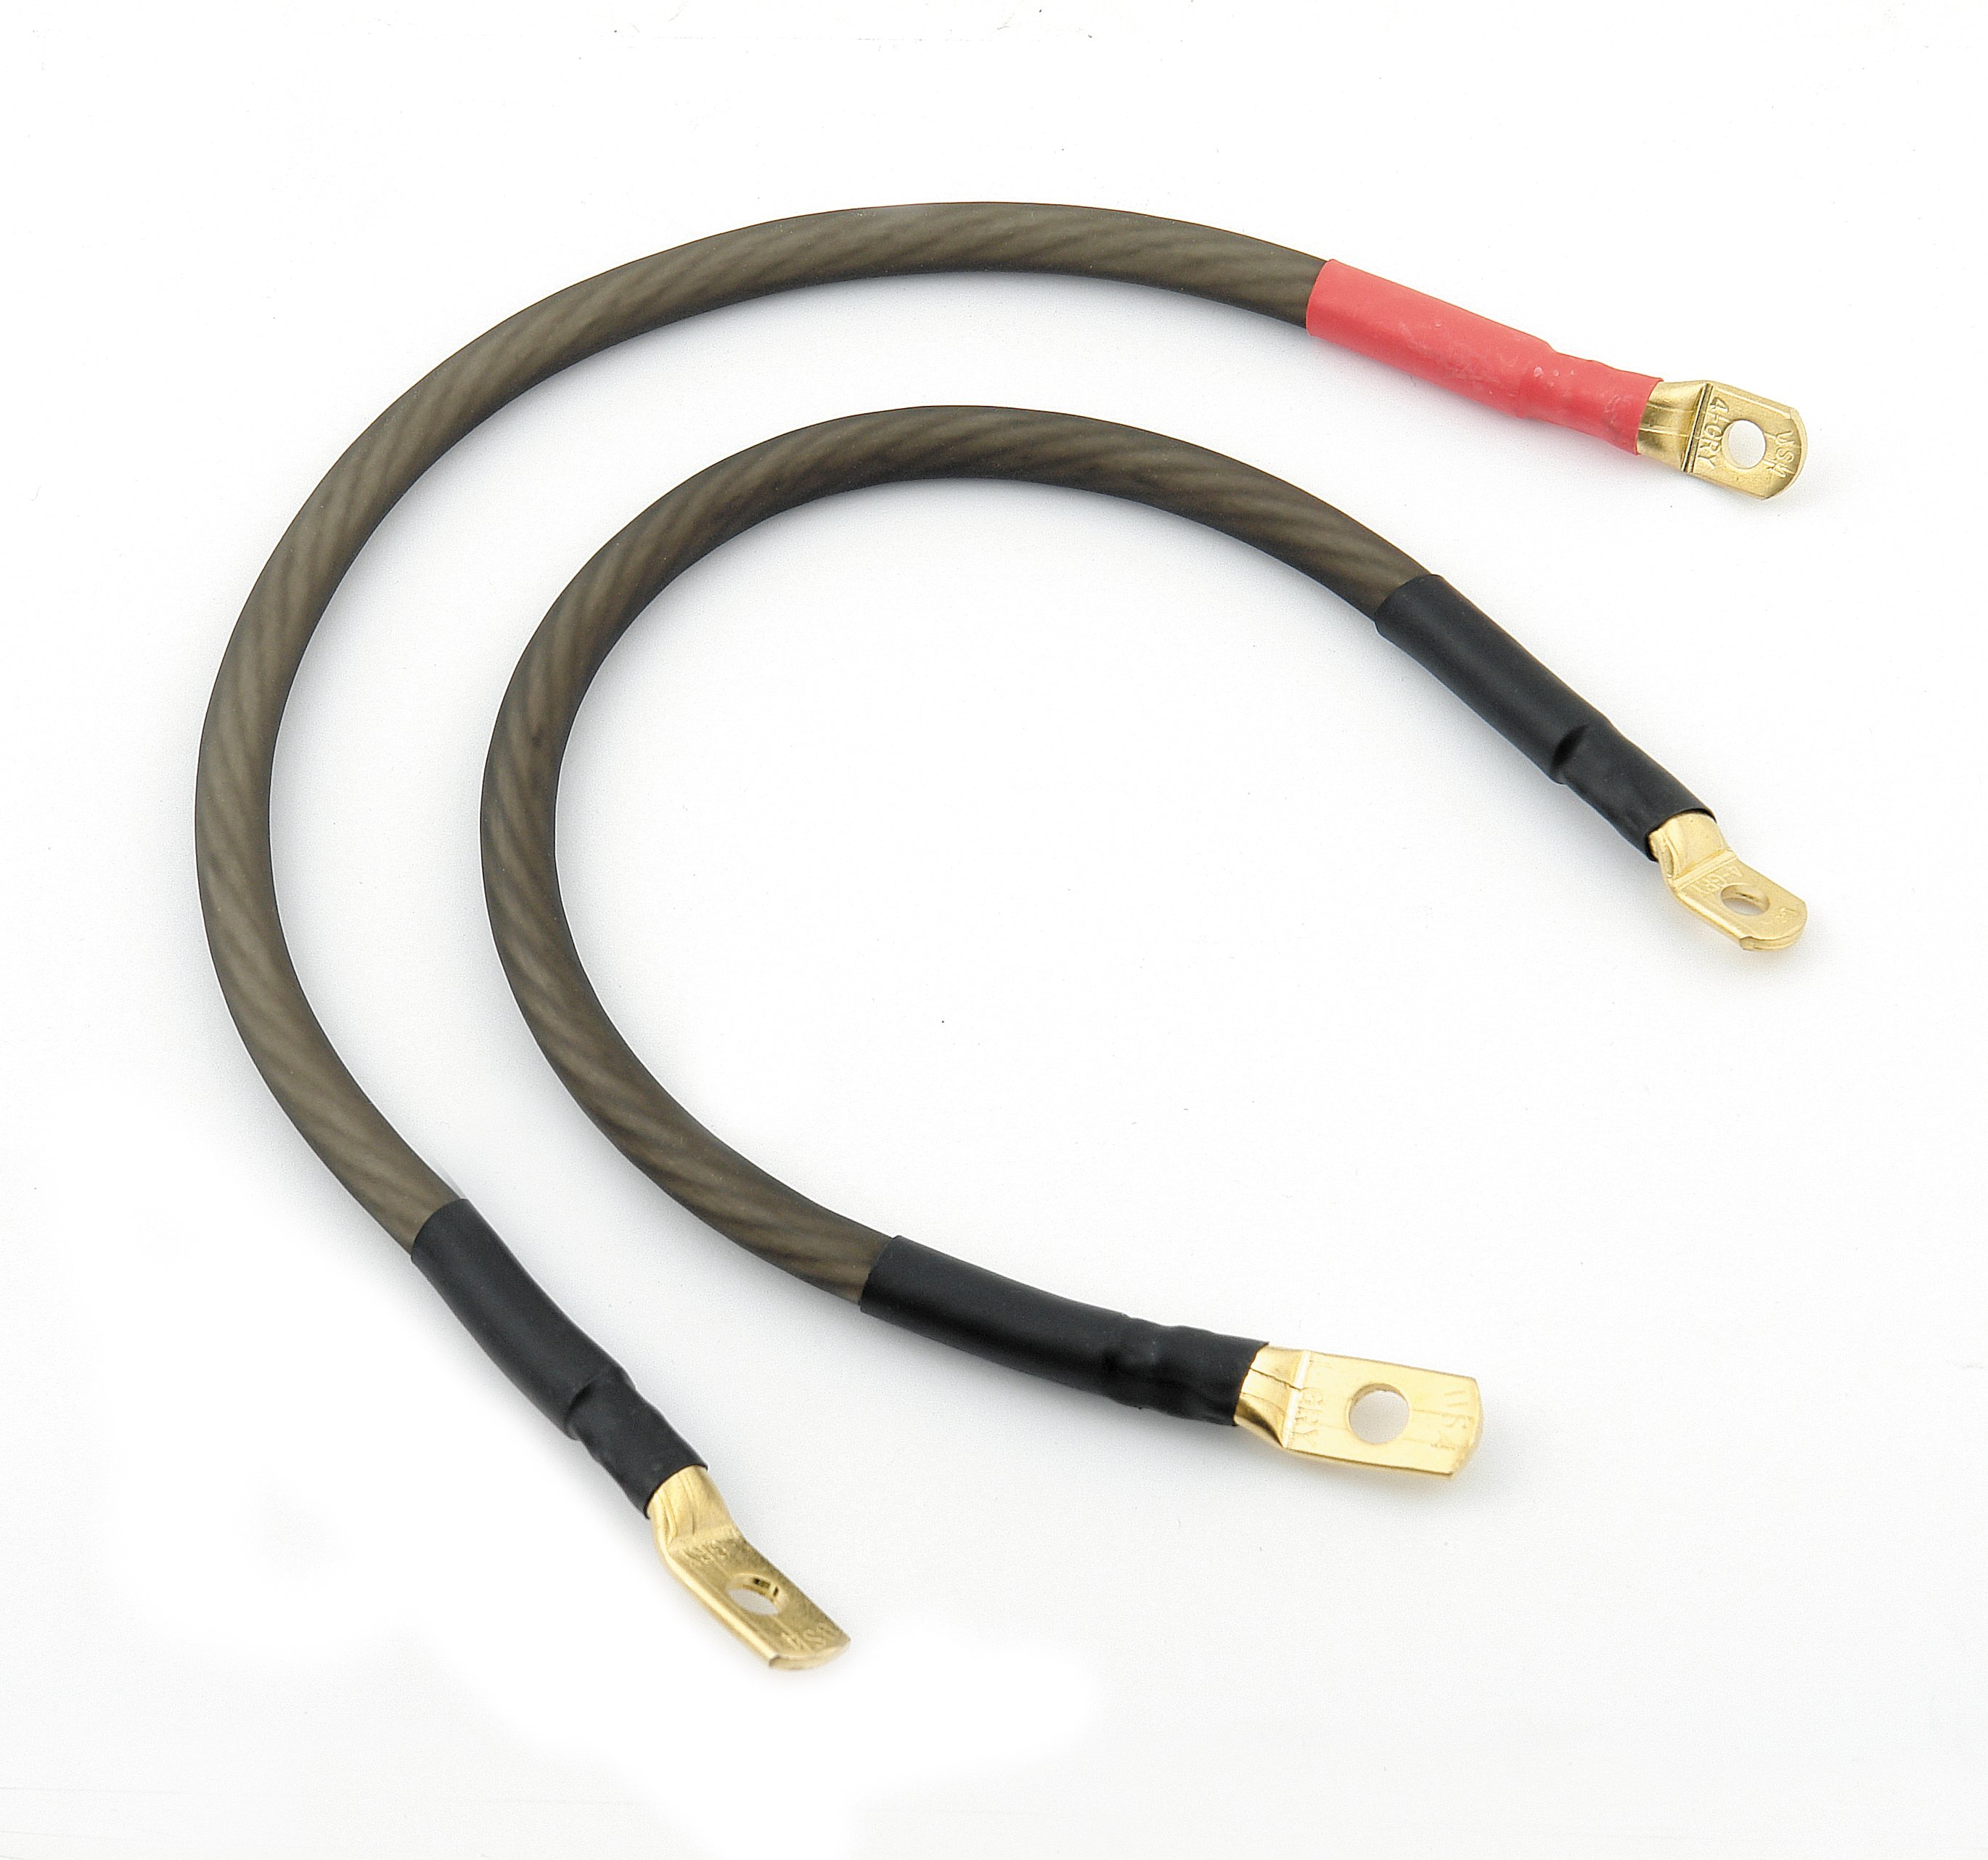 ACCEL Motorcycle 151408 Battery Cable Set - Dyna - 4 Gauge